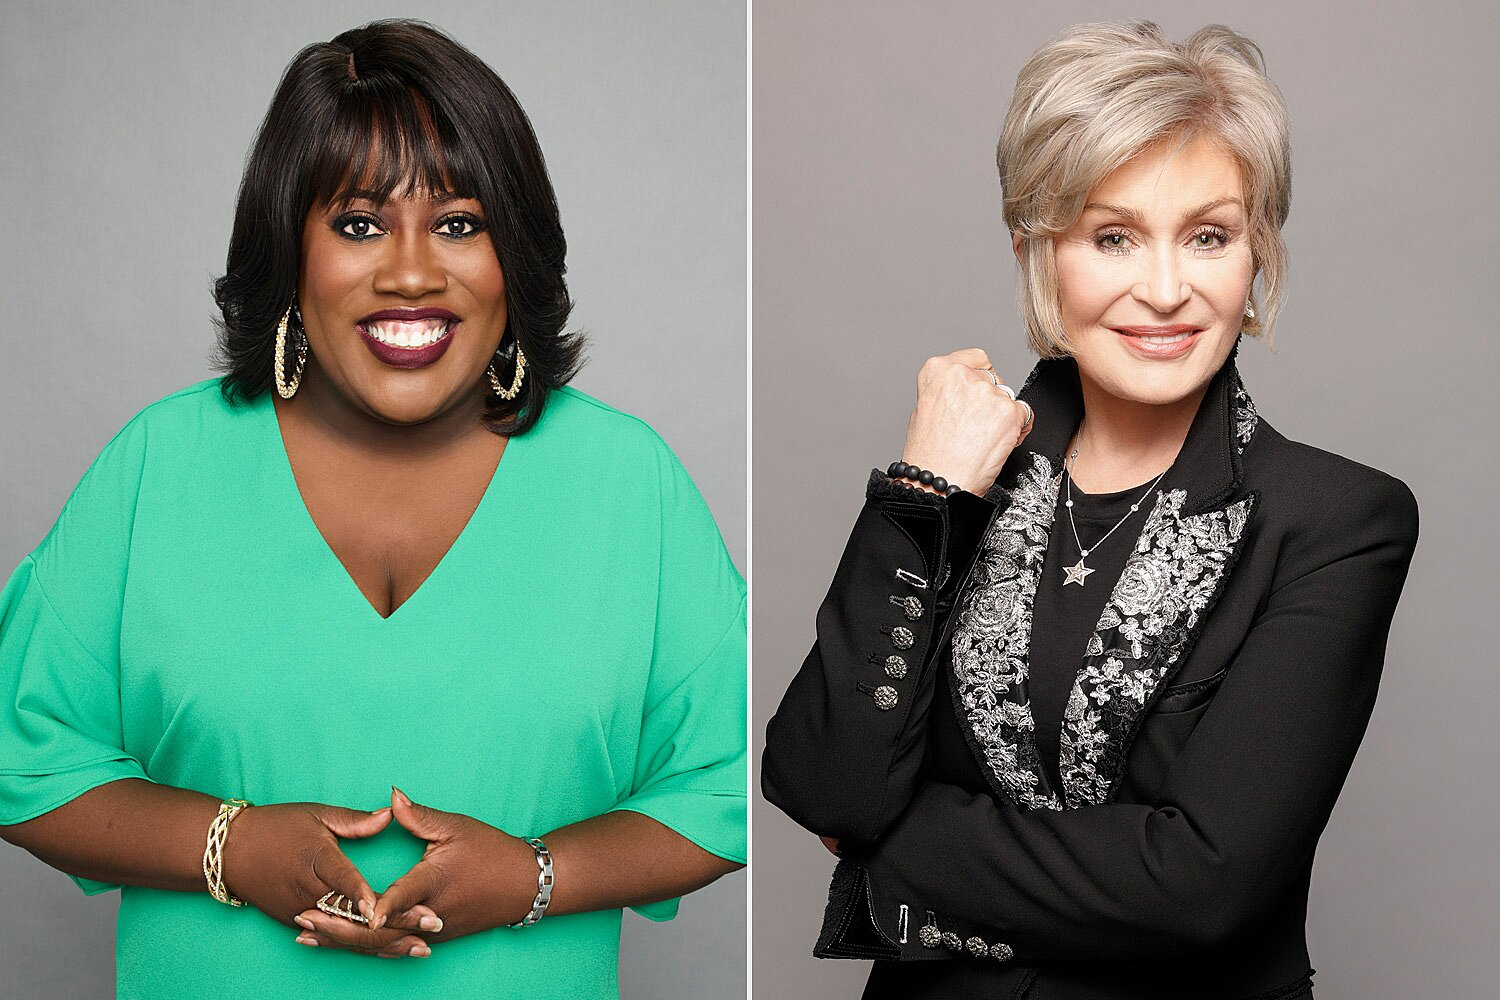 Sheryl Underwood On Exchange With Sharon Osbourne About Piers Morgan People Com